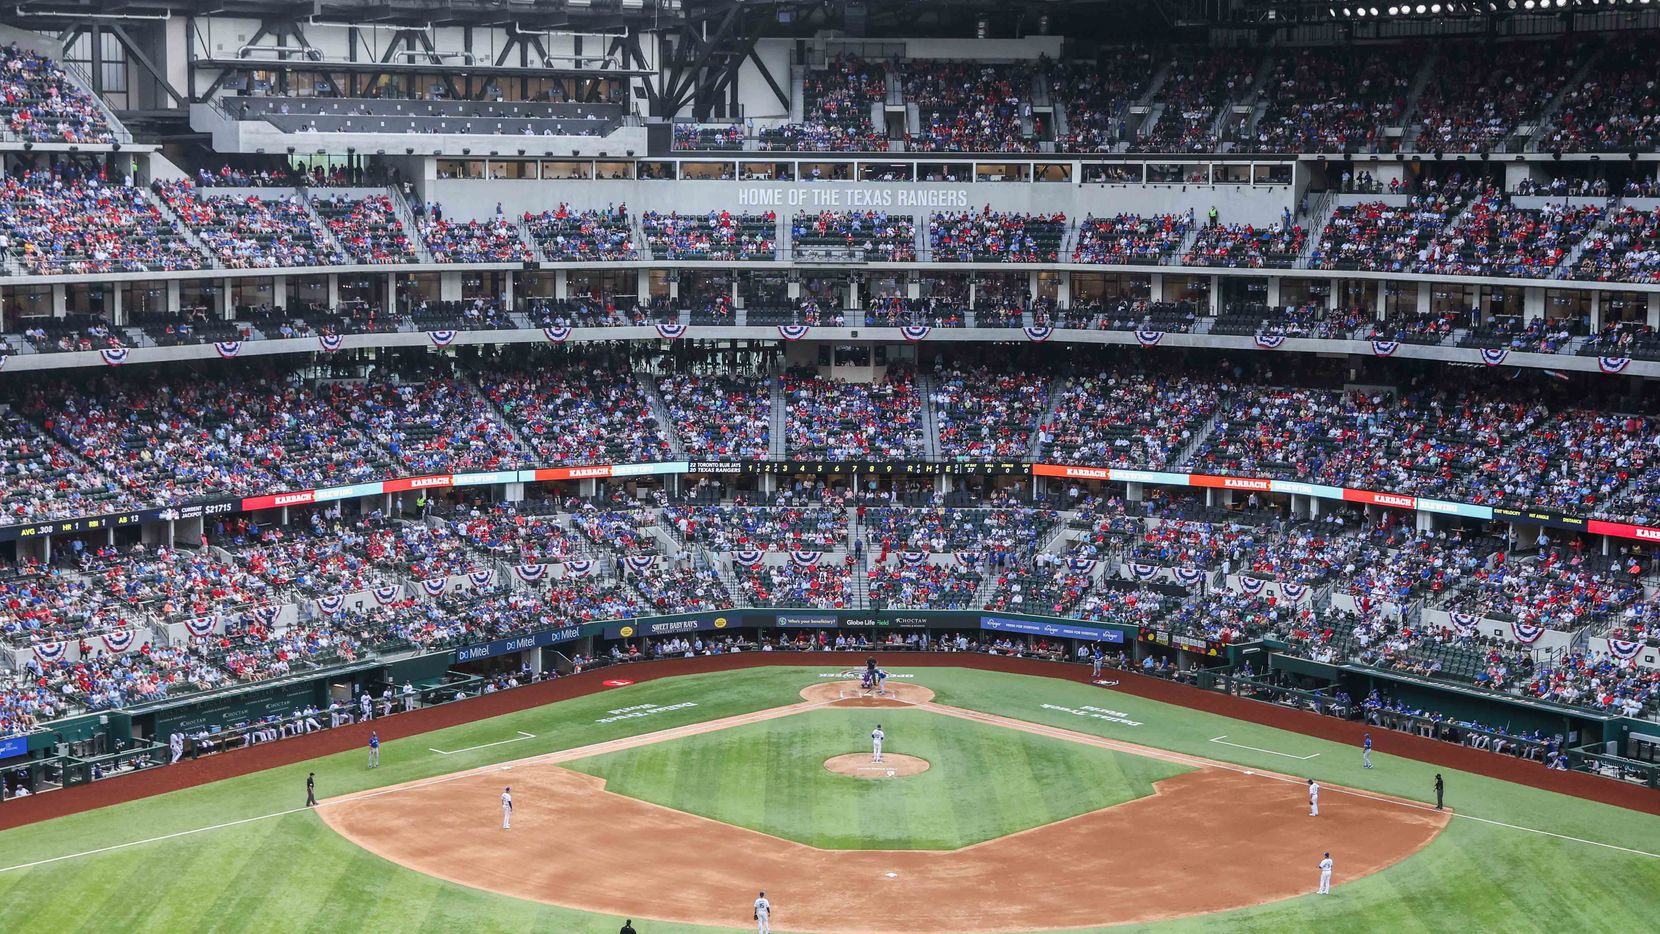 Texas Rangers vs. Toronto Blue Jays at the Globe Life Field on opening day in Arlington, Texas on Monday, March 5, 2021.